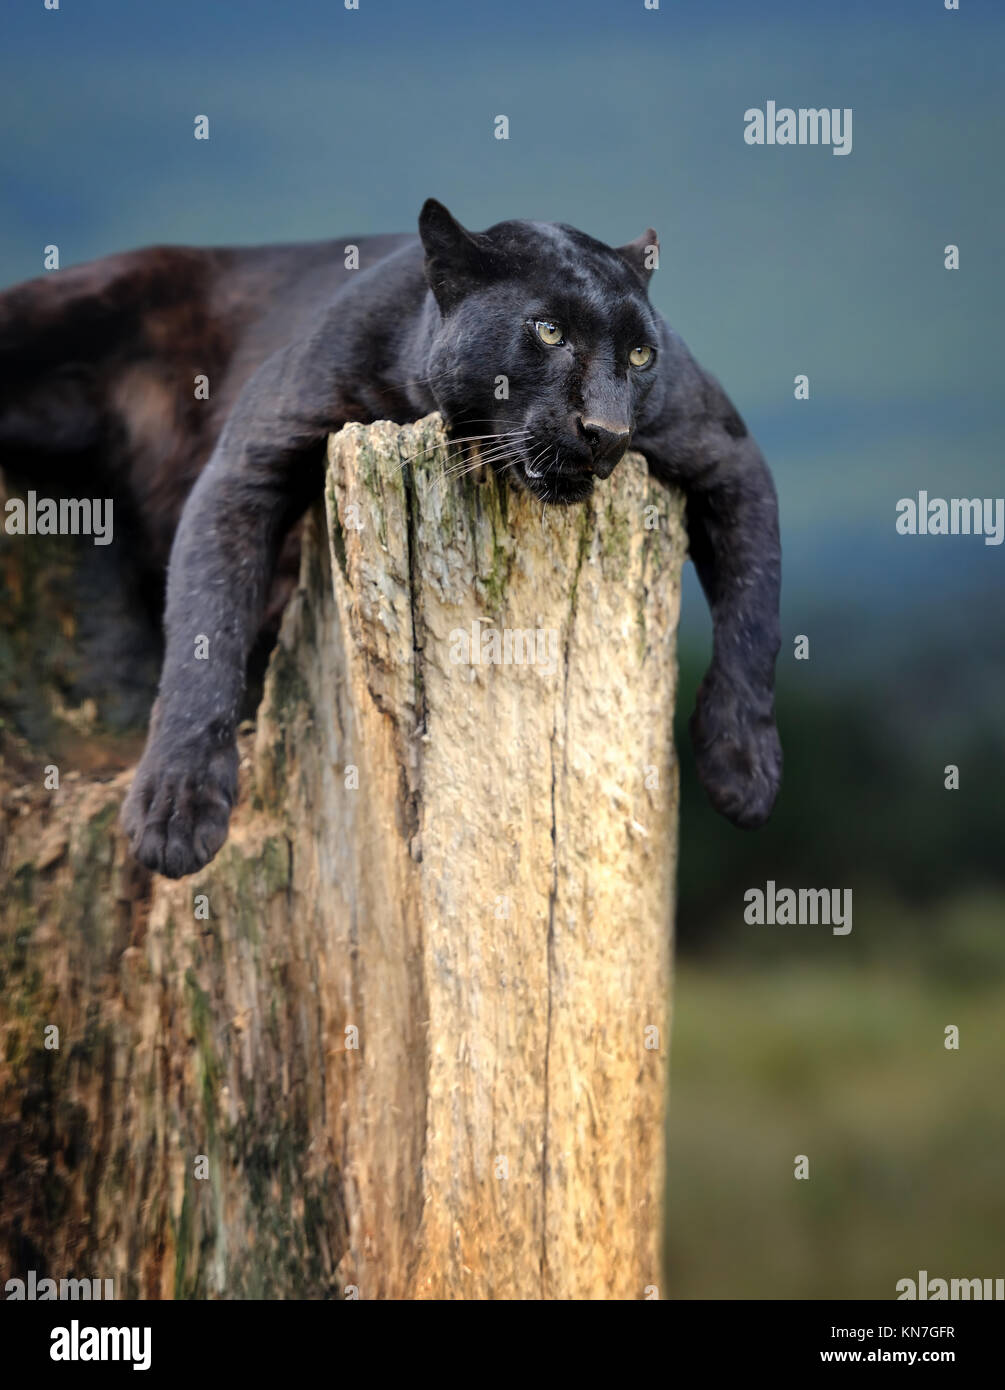 Young black leopard sitting on a tree trunk in the background of Savannah - Stock Image